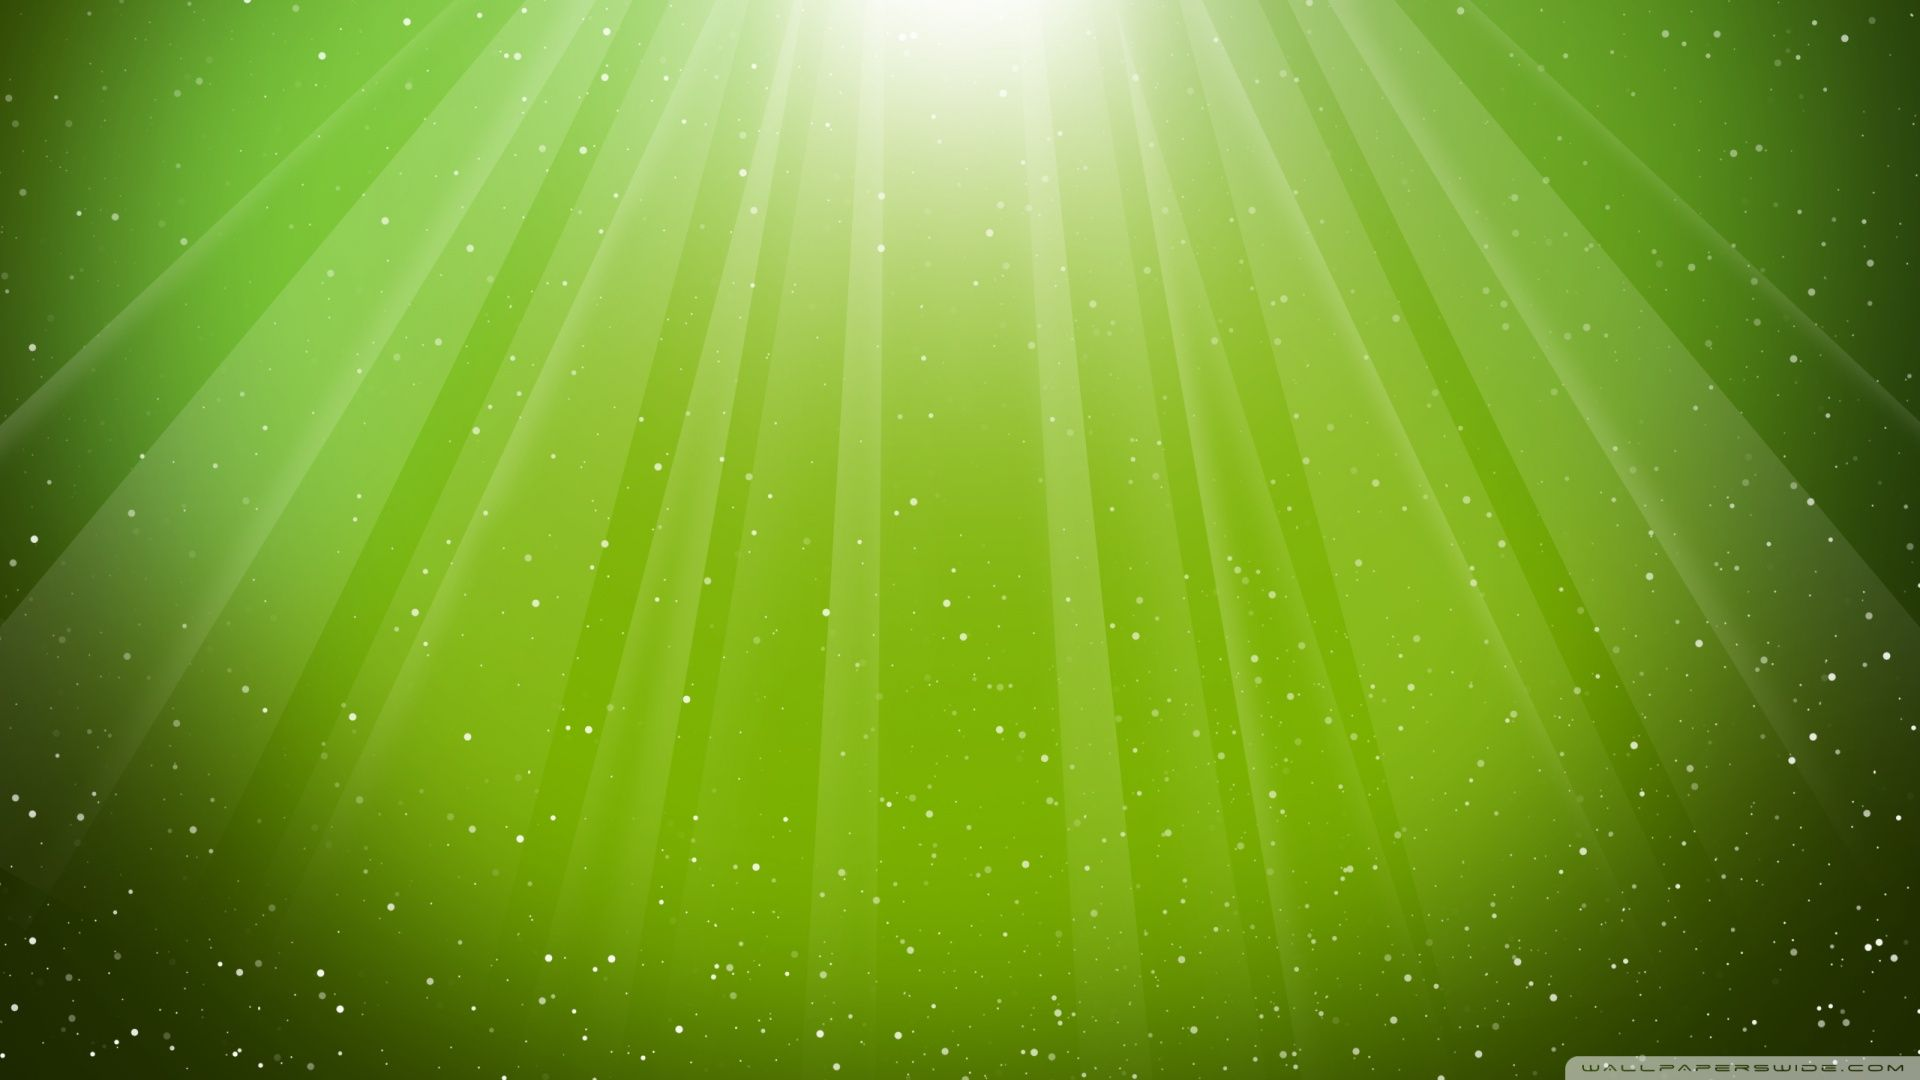 Light Green Hd Wallpaper